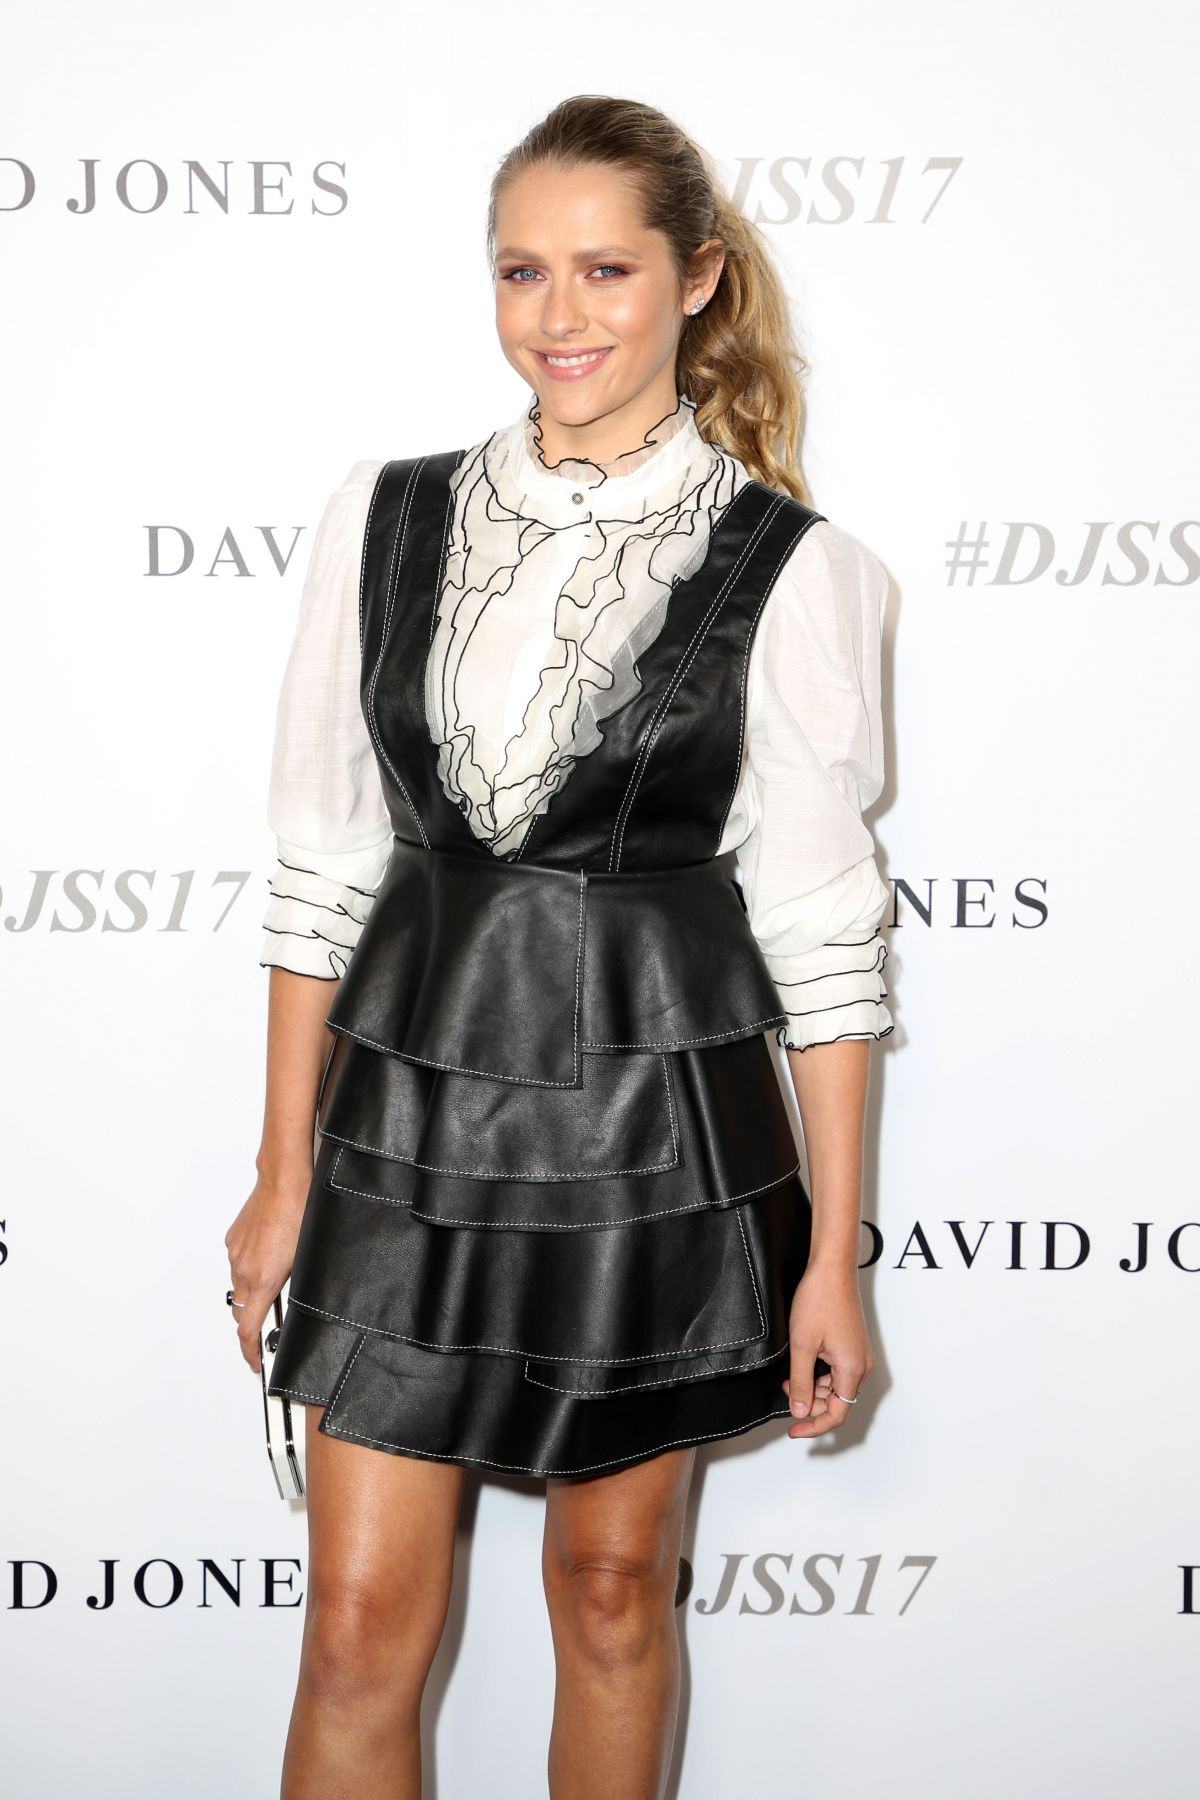 TERESA PALMER at David Jones S/S 2017 Collections Launch in Sydney 08/09/2017